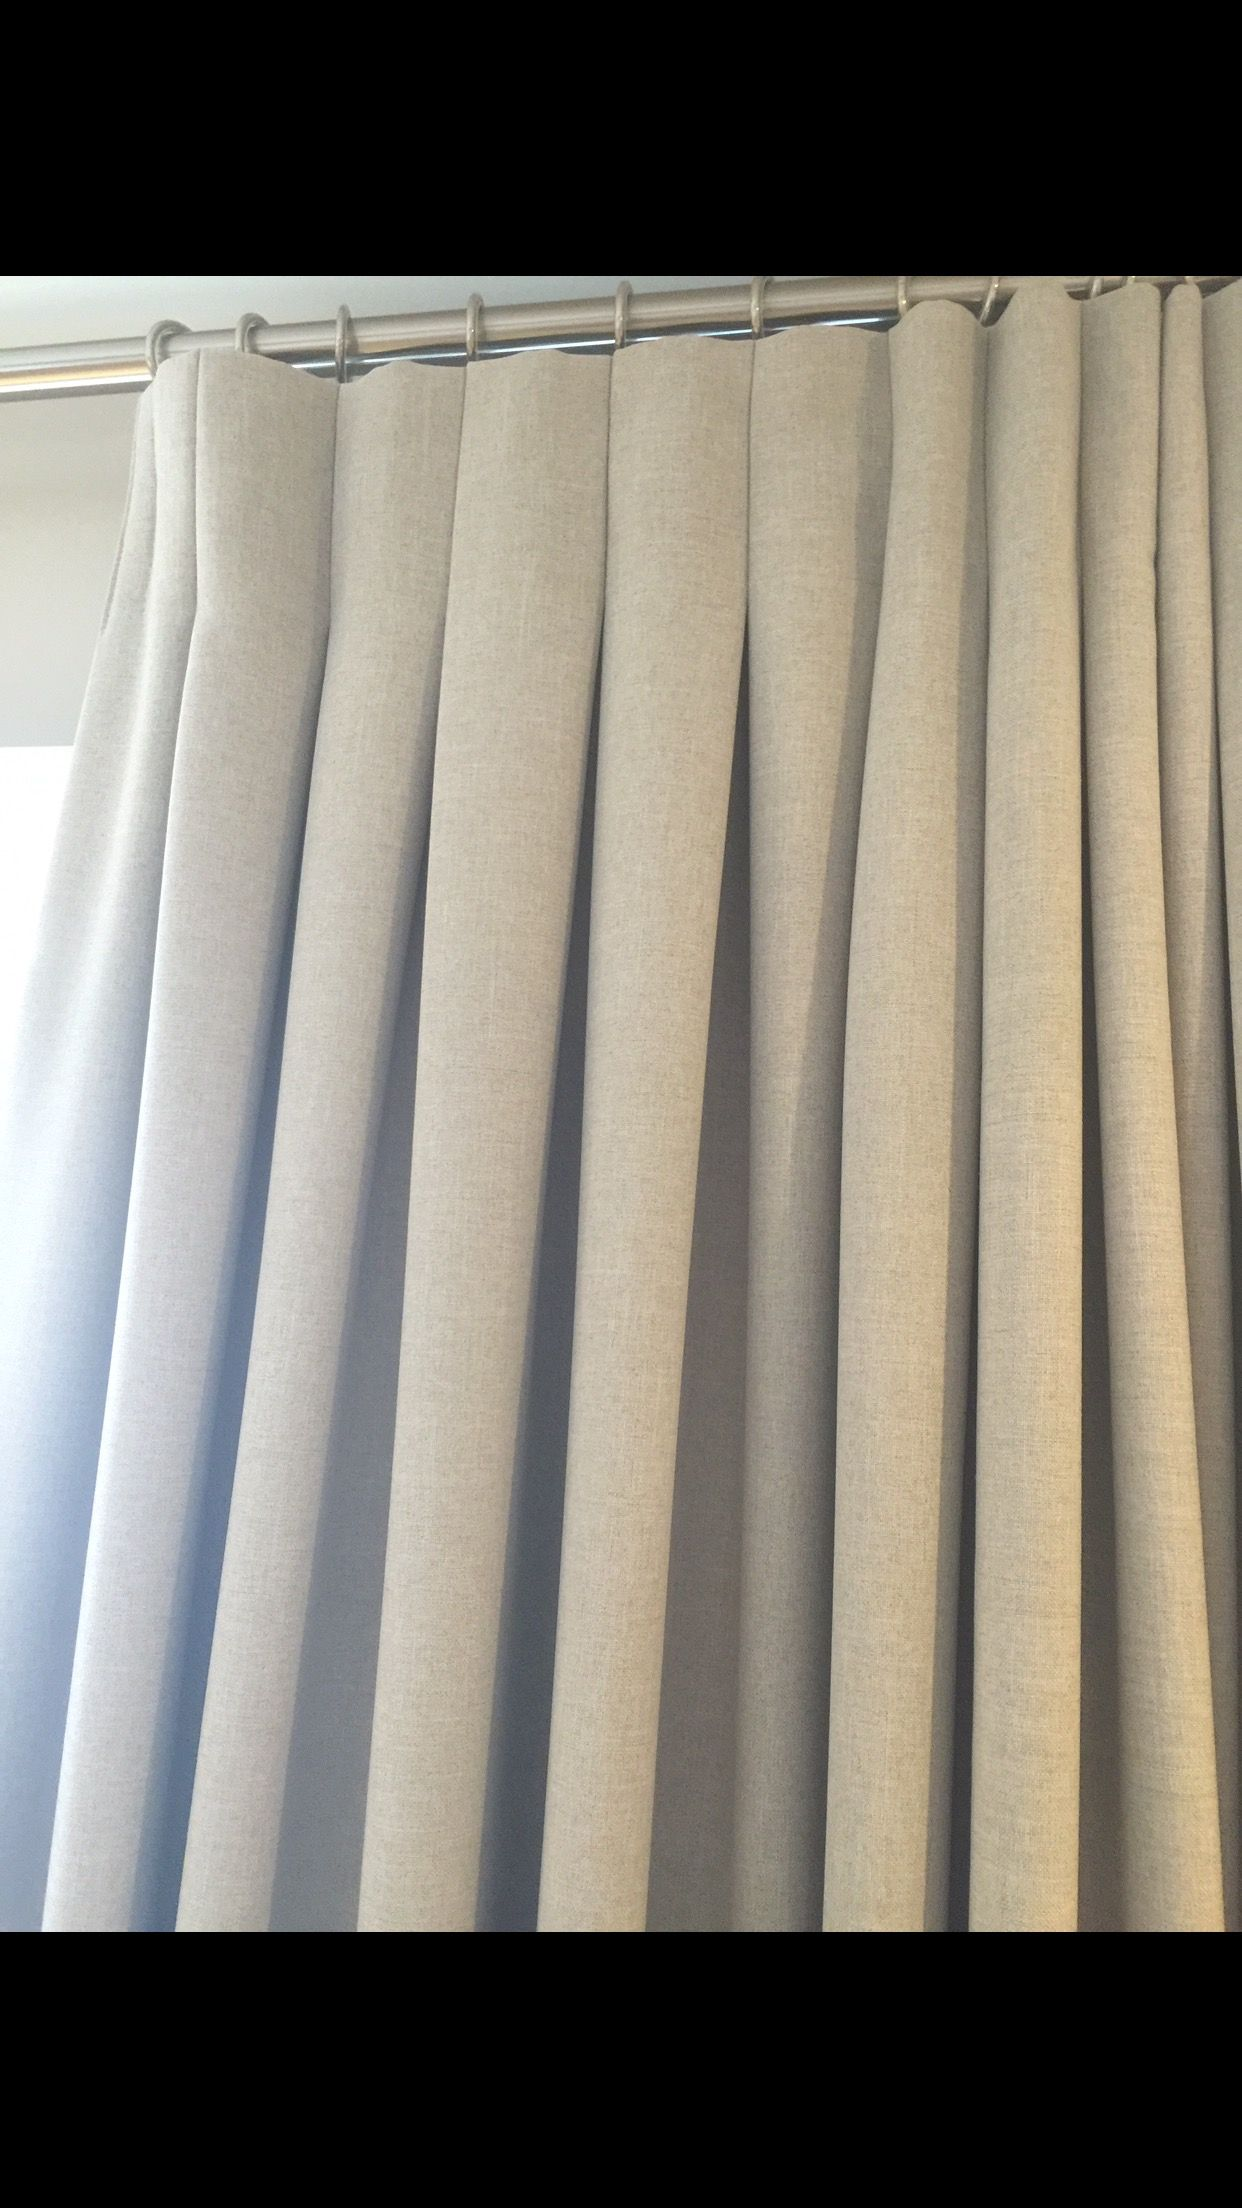 inverted pleats window curtain flax window treatments white  and navy  color block pure Linen Custom  made  Curtains Panel many  colors